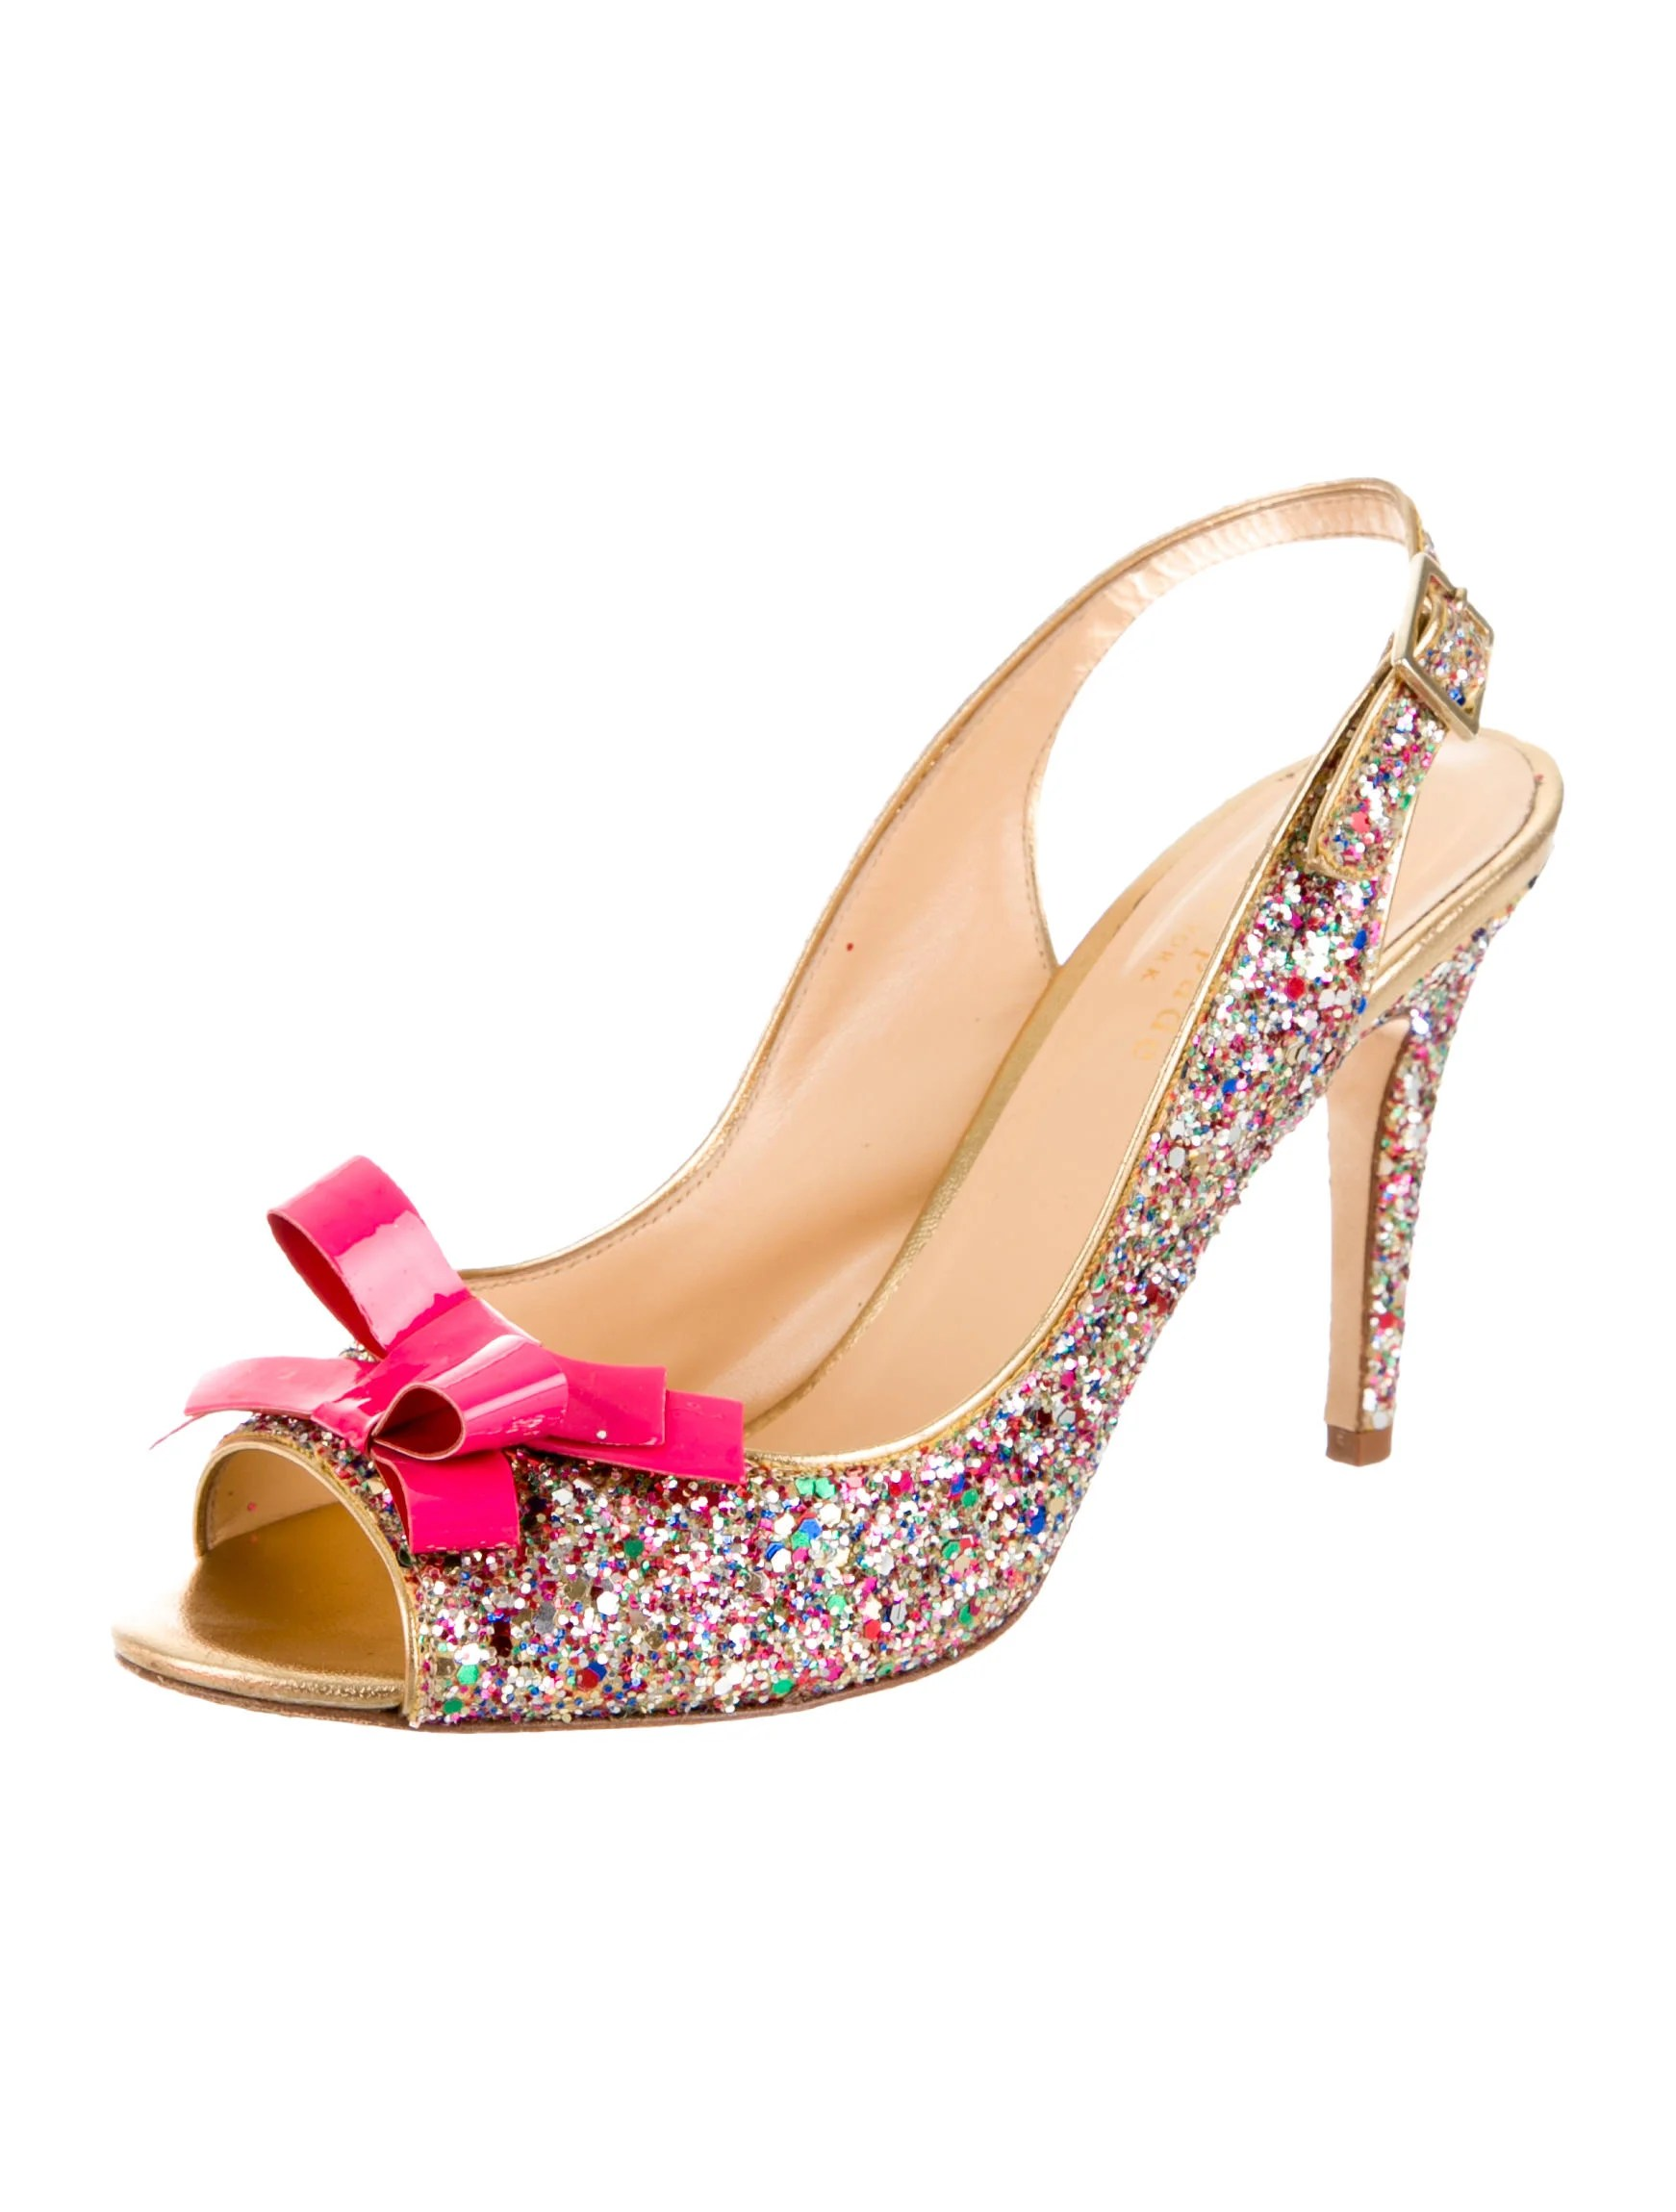 Kate Spade Glitter Shoes